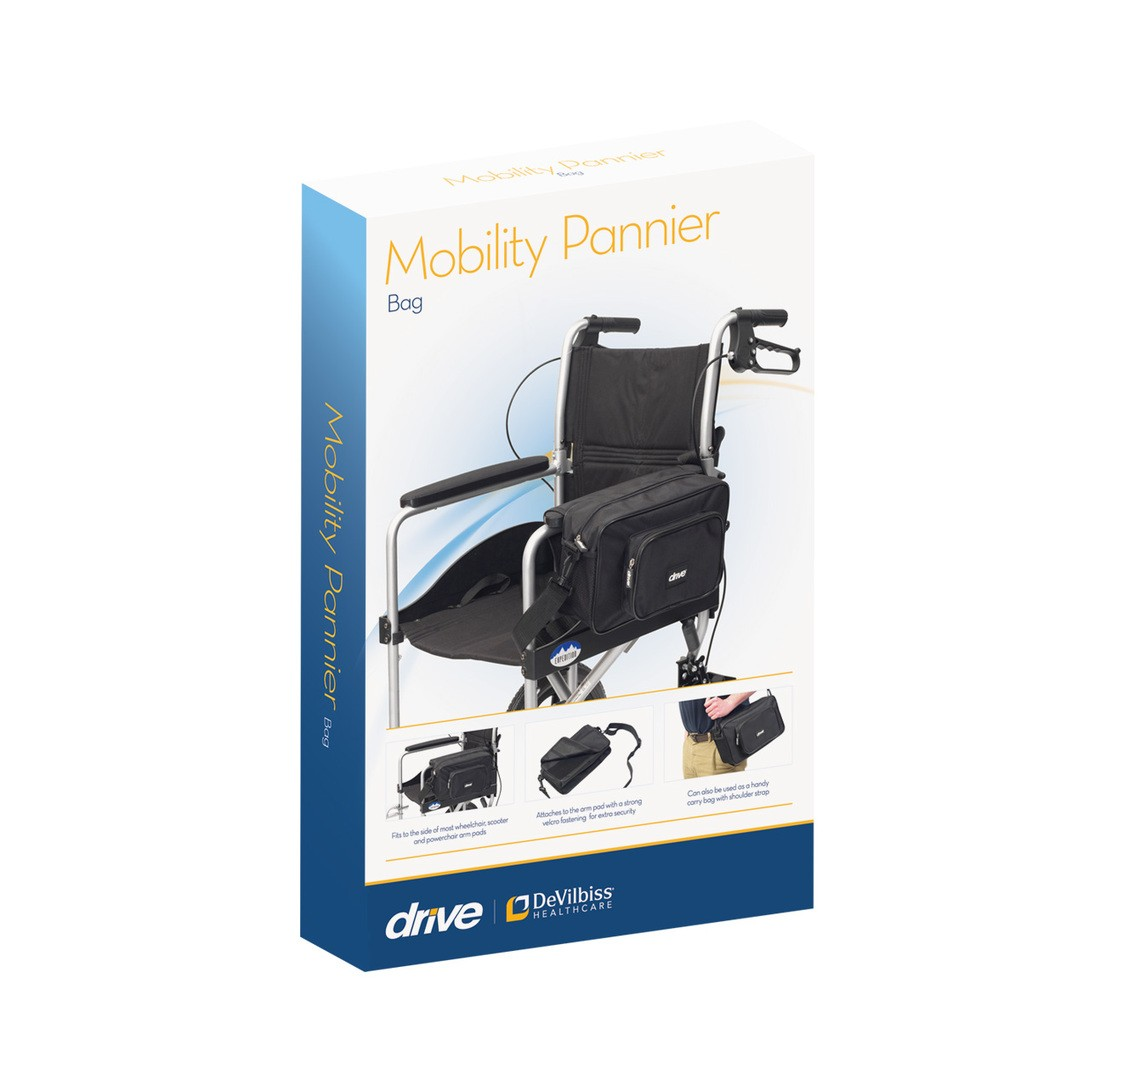 power chair accessories bags desk mesh back support wheelchair pannier bag at low prices uk wheelchairs